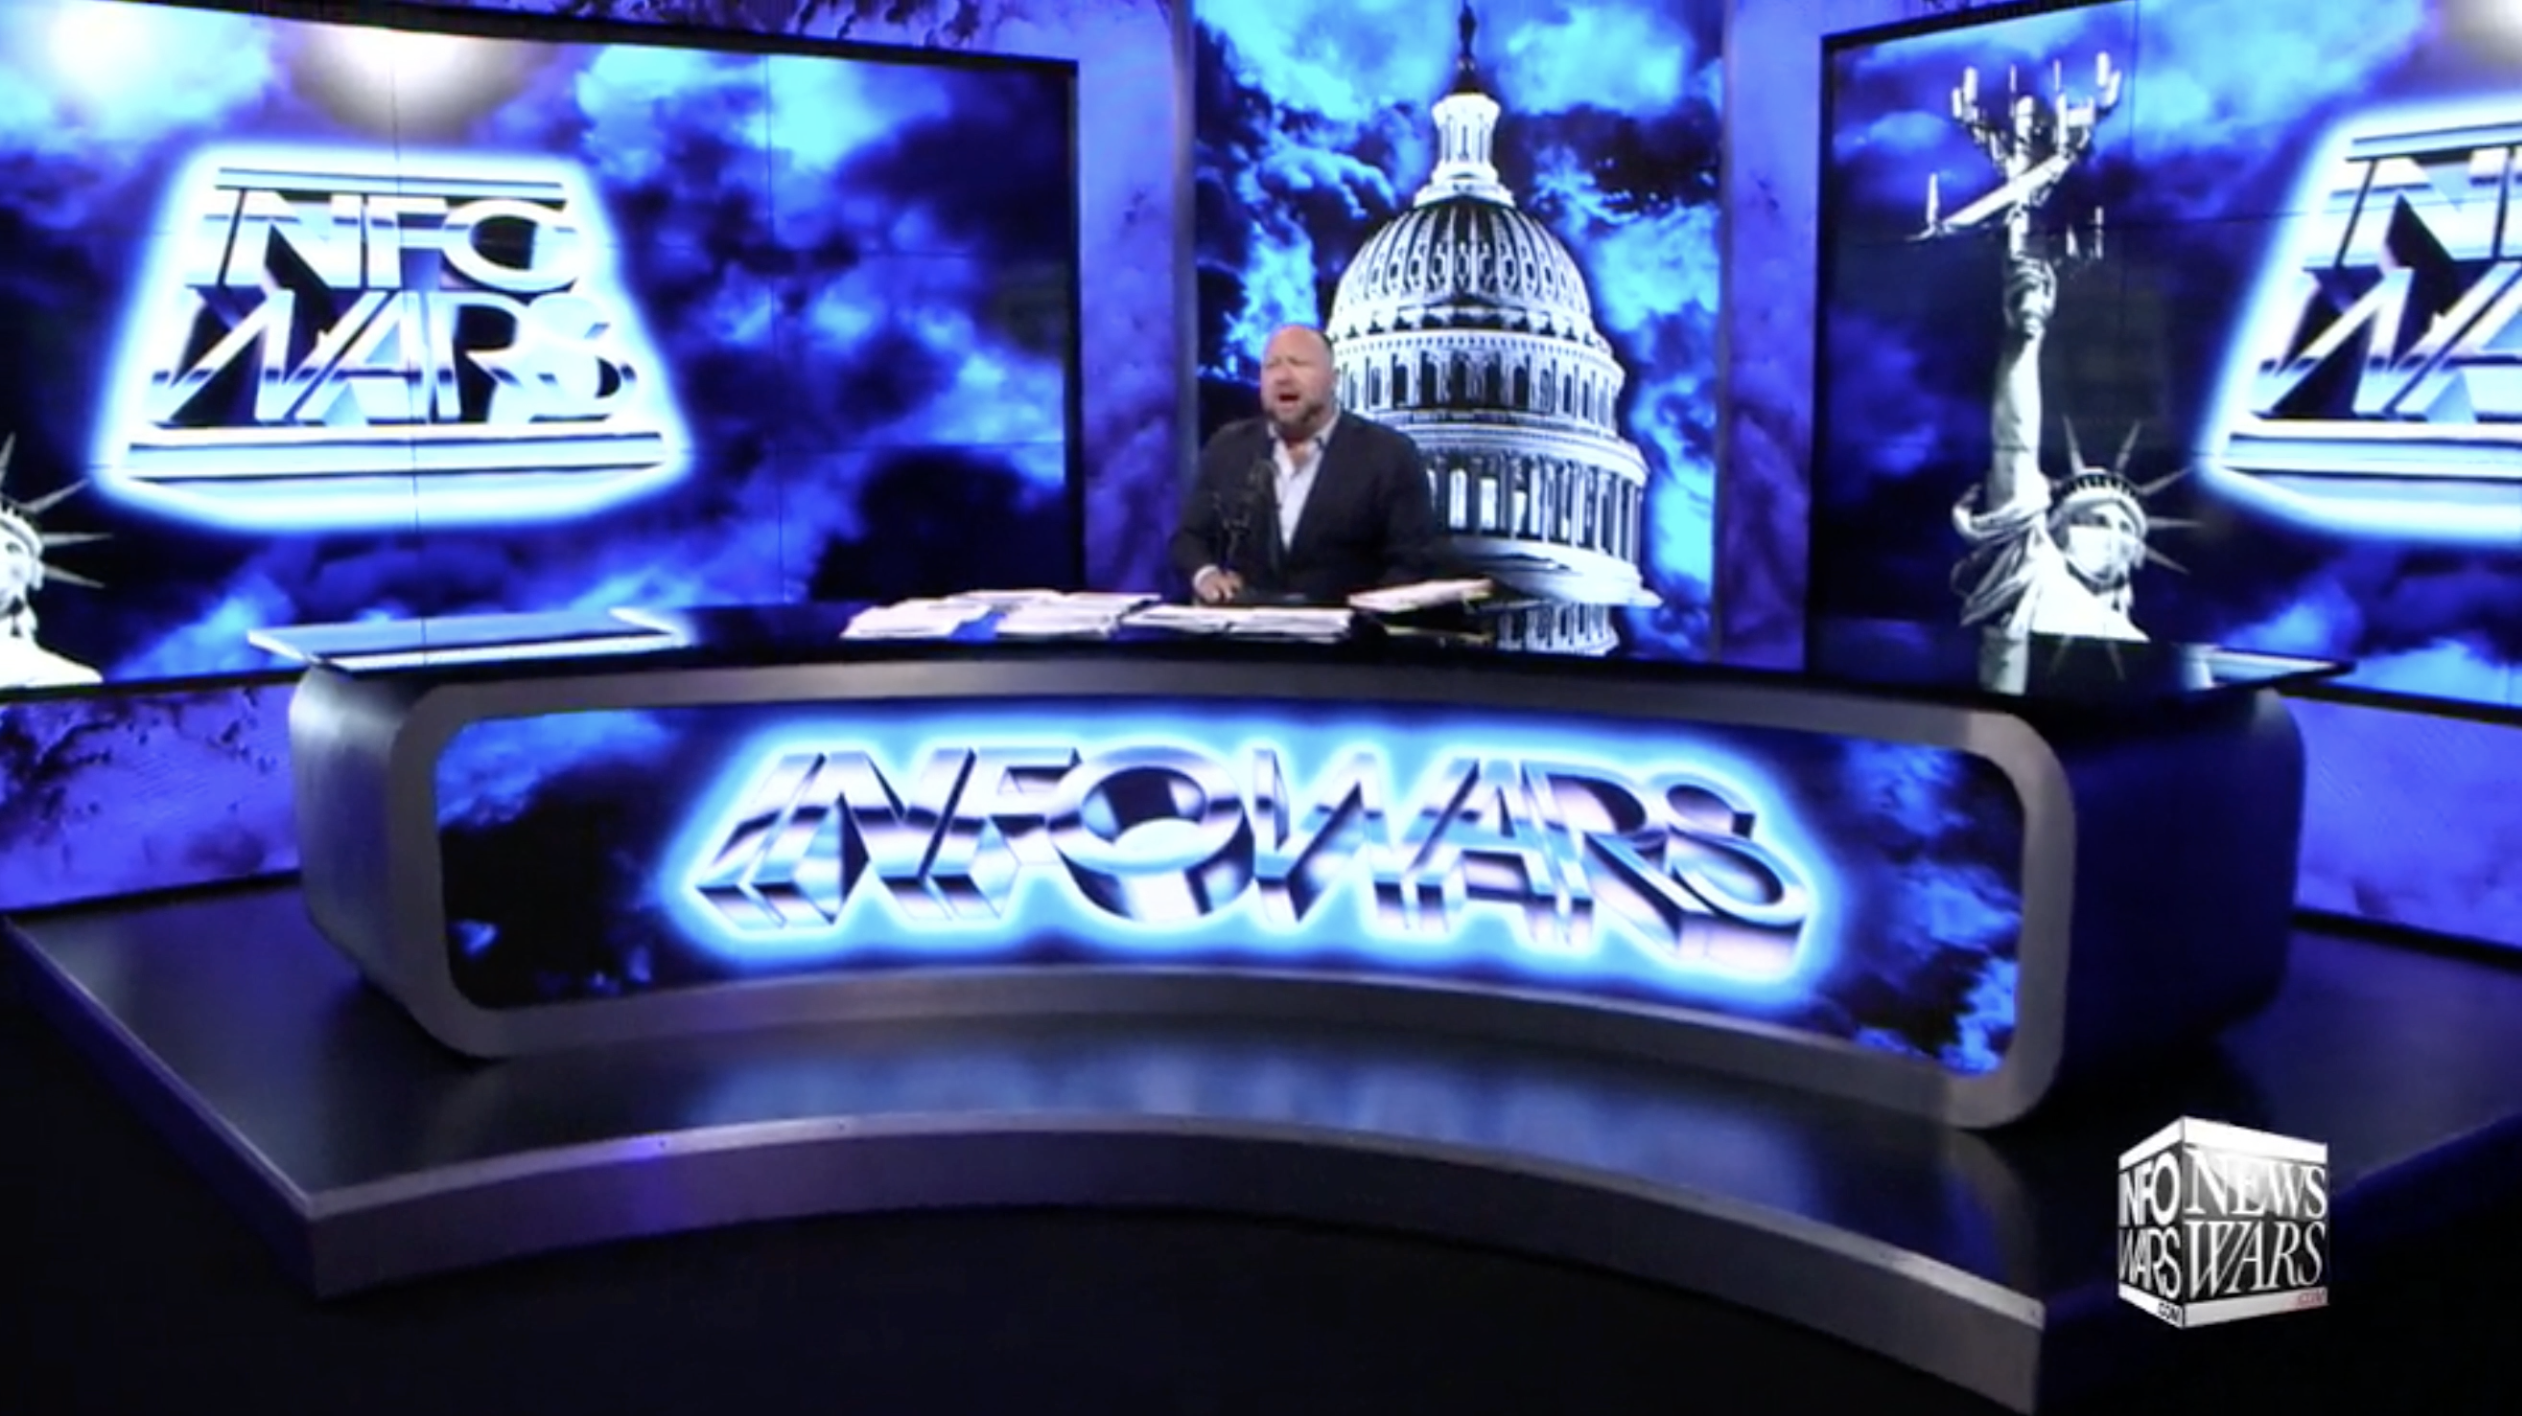 Alex Jones Infowars Studio Stingray Statue of Liberty EXZM August 18th 2020